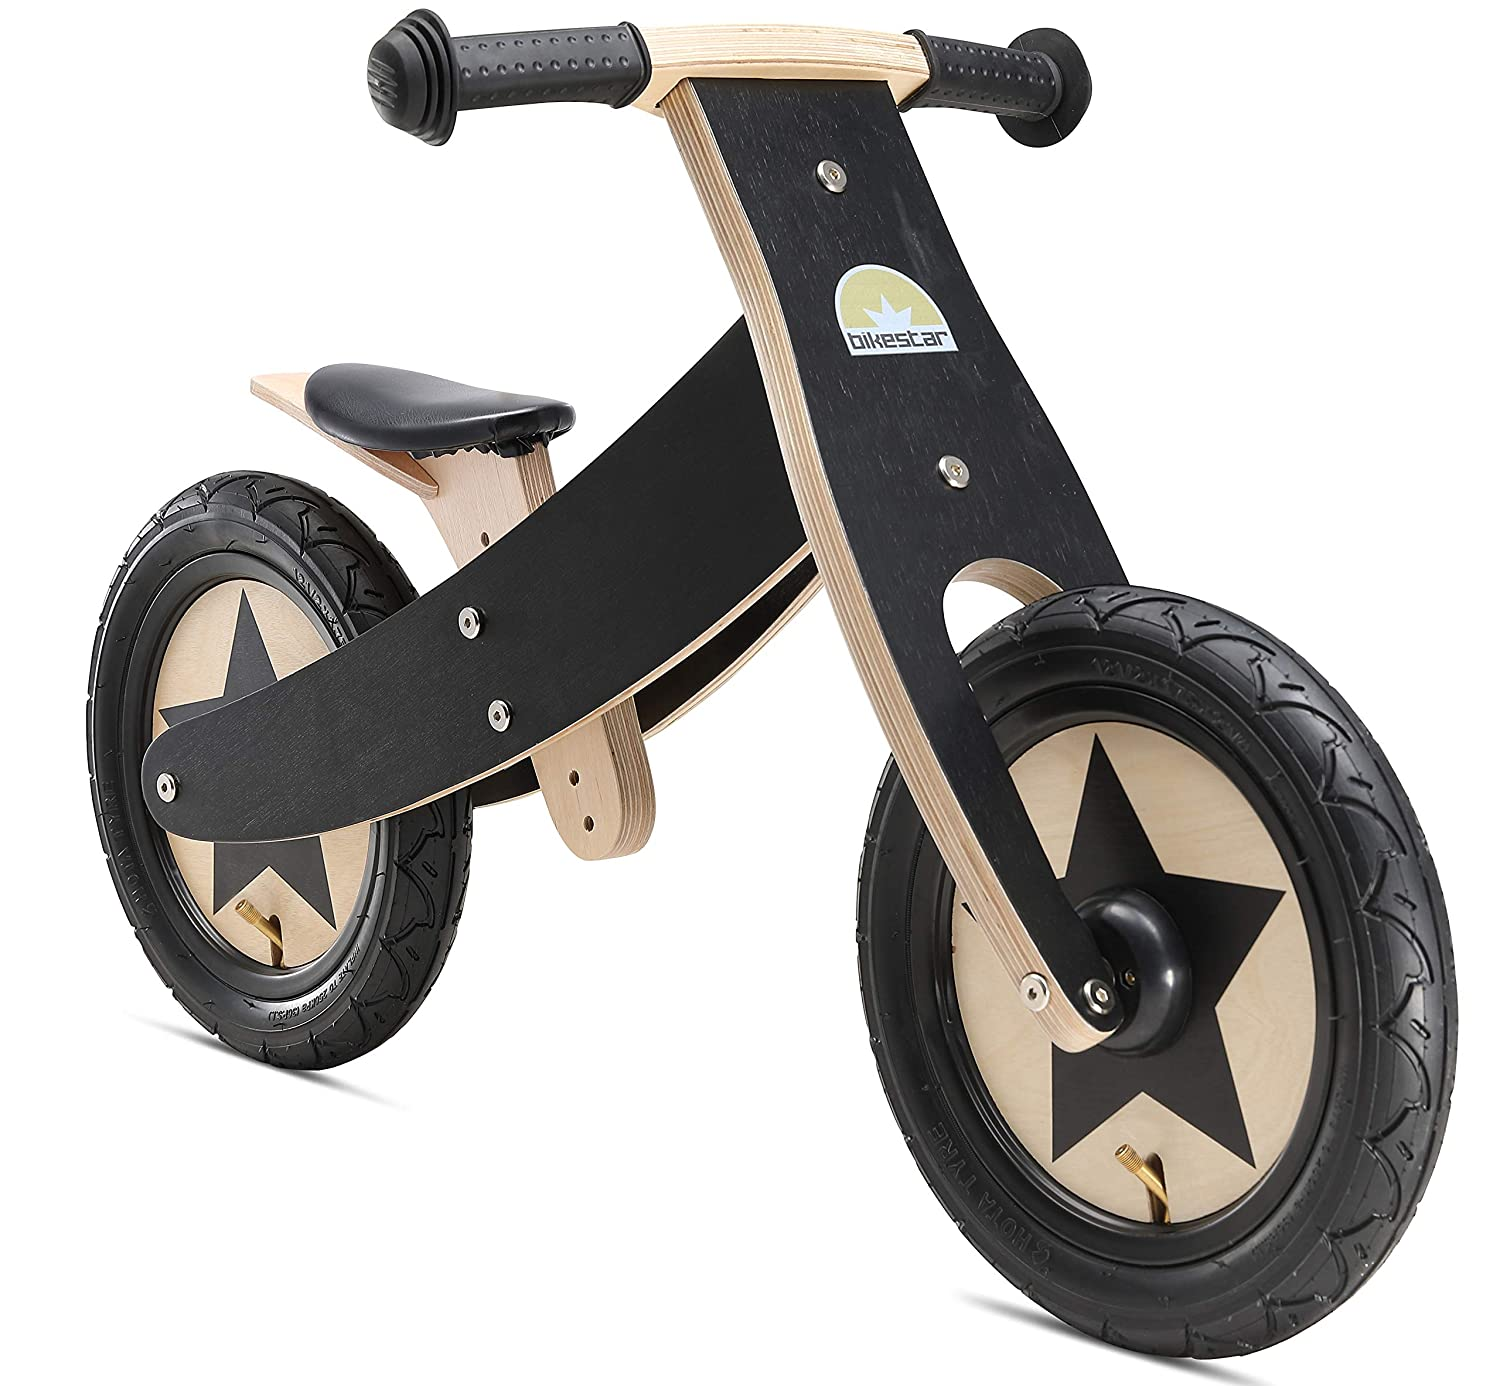 Black 2018 Bikestar® Original Safety Wooden Lightweight First Running Balance Bike with air tires for Kids age 3 year old boys and girls   12 Inch congreenible 2 in 1 Bike Edition